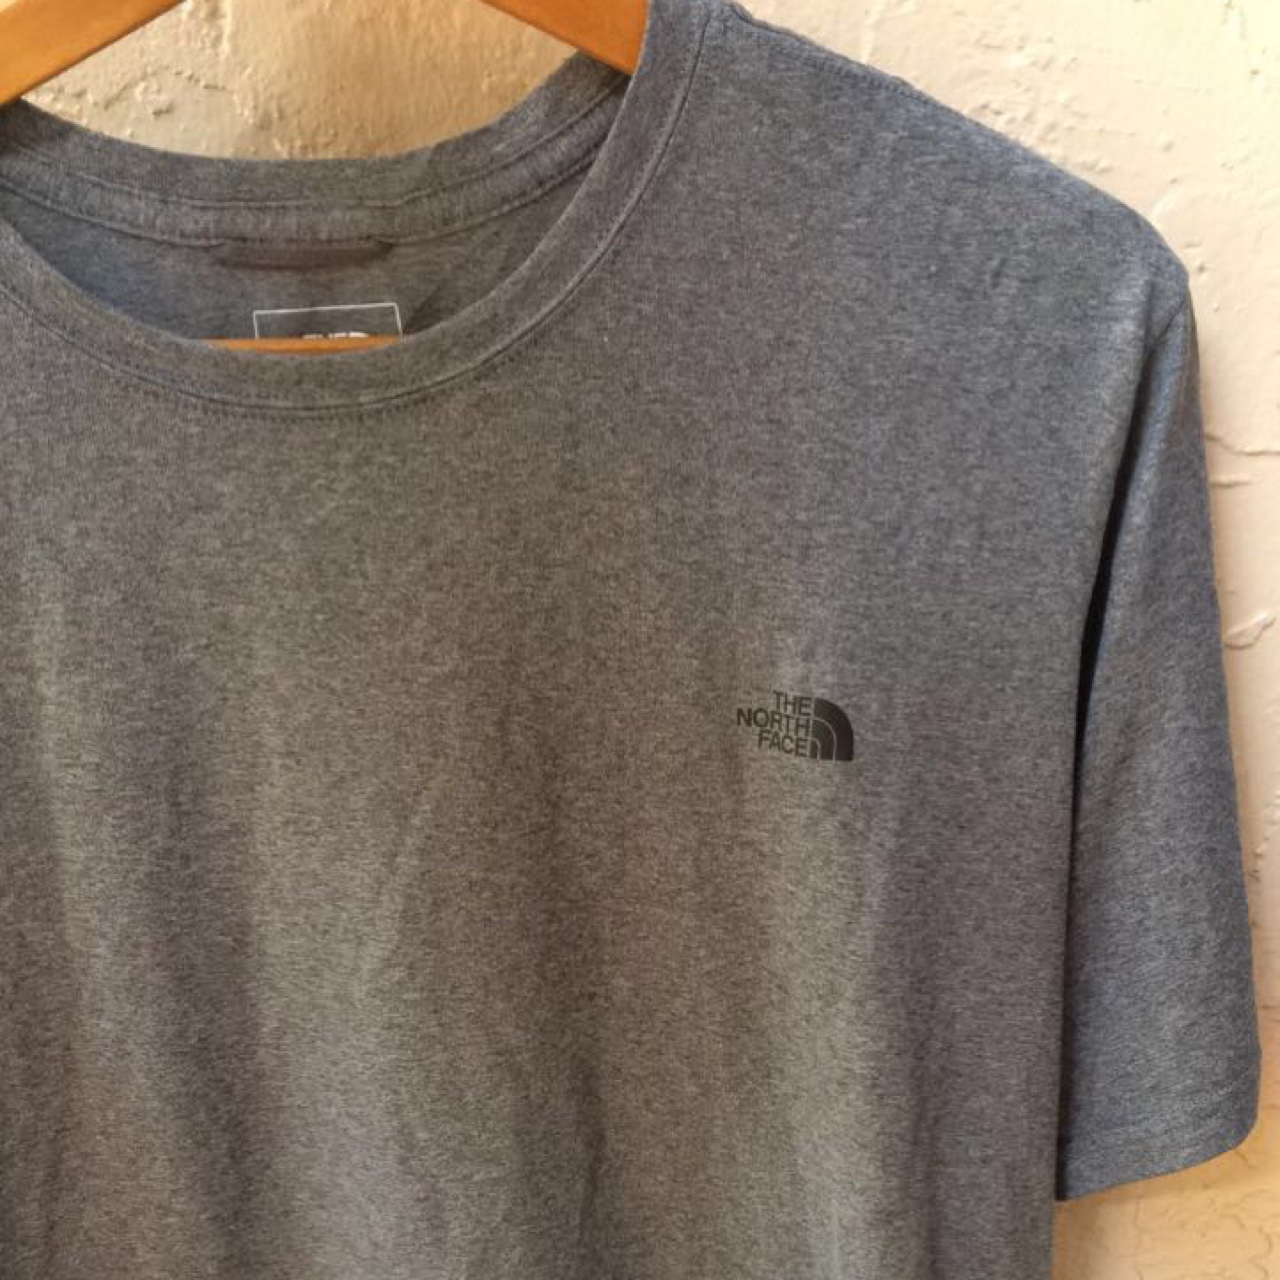 c057c5cce The North Face Mens Grey Shirt - loose dri fit like... - Depop